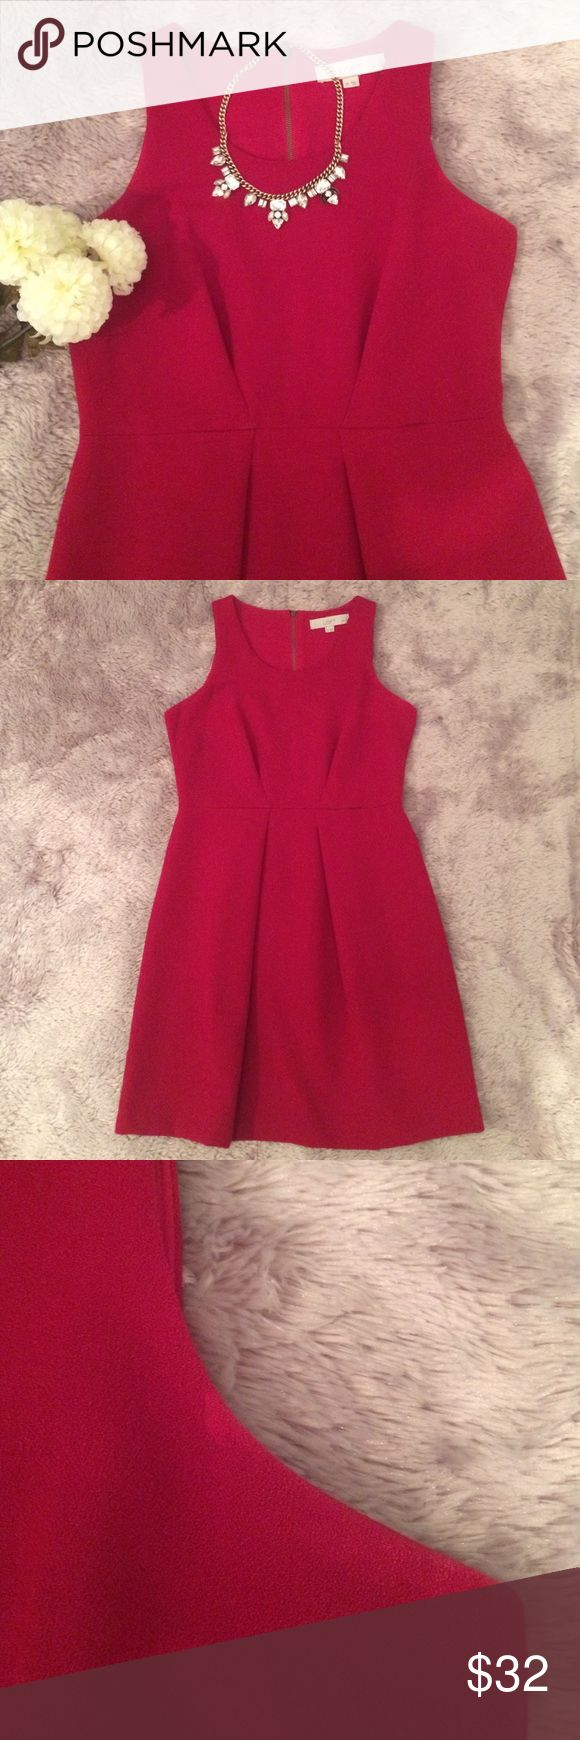 LOFT Dress This elegant, red dress is perfect for the office, and event, or a holiday party. It's in great condition except for a small discoloration on the left strap. Feel free to make an offer using the offer button! LOFT Dresses Mini